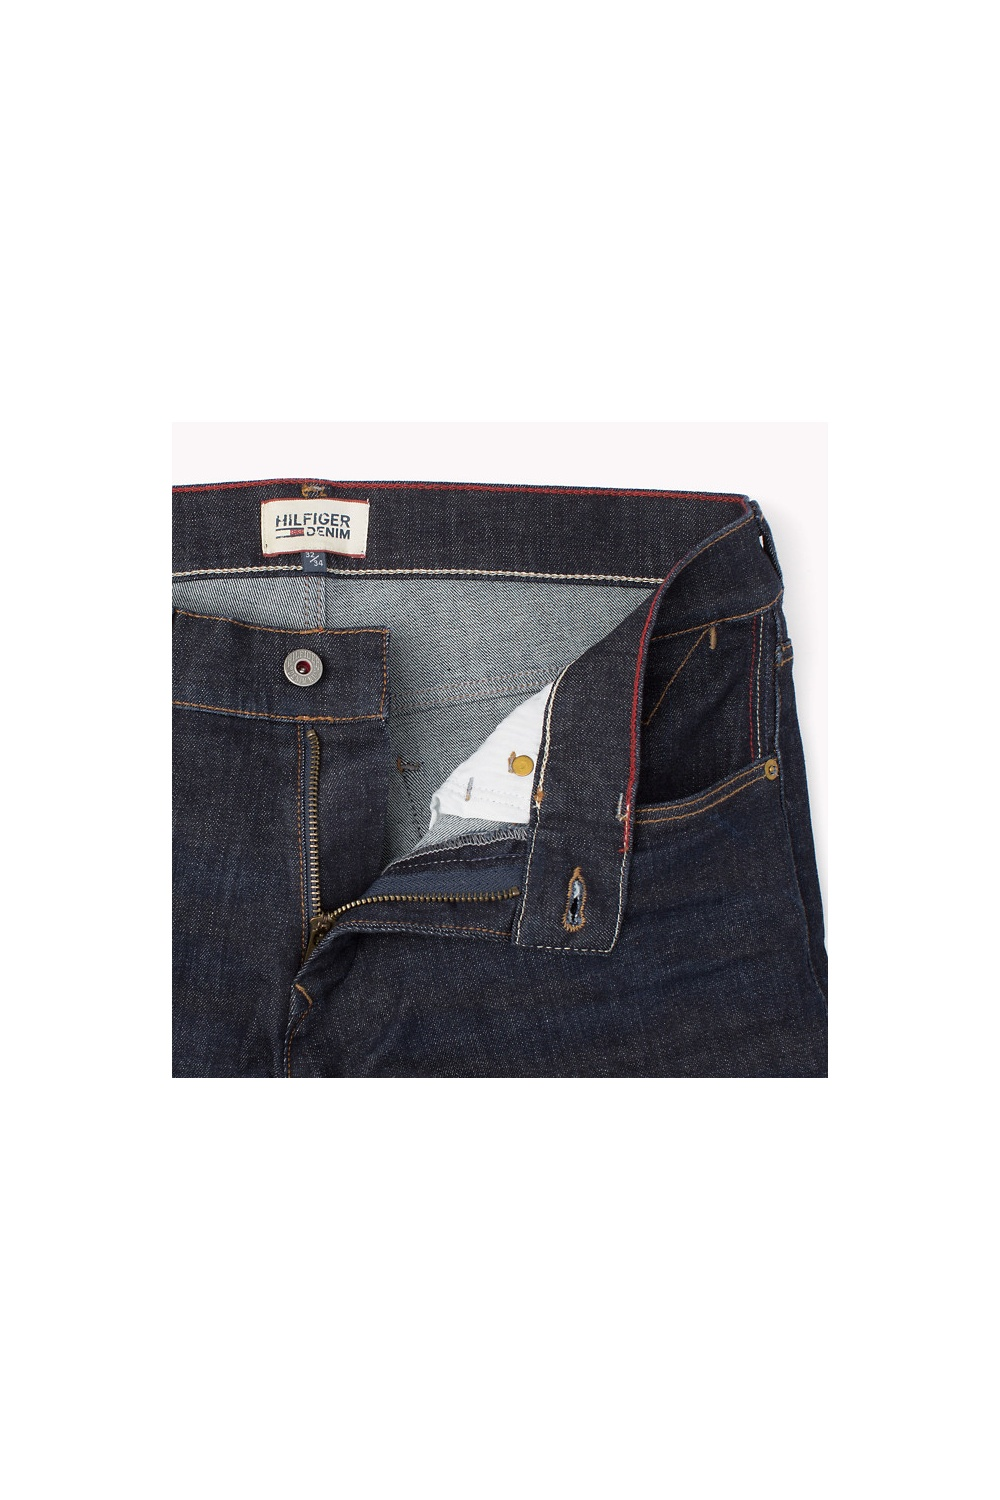 b667a2da076 Tommy Jeans Scanton Slim Fit Jeans (Boston Comfort) - Jeans from ...